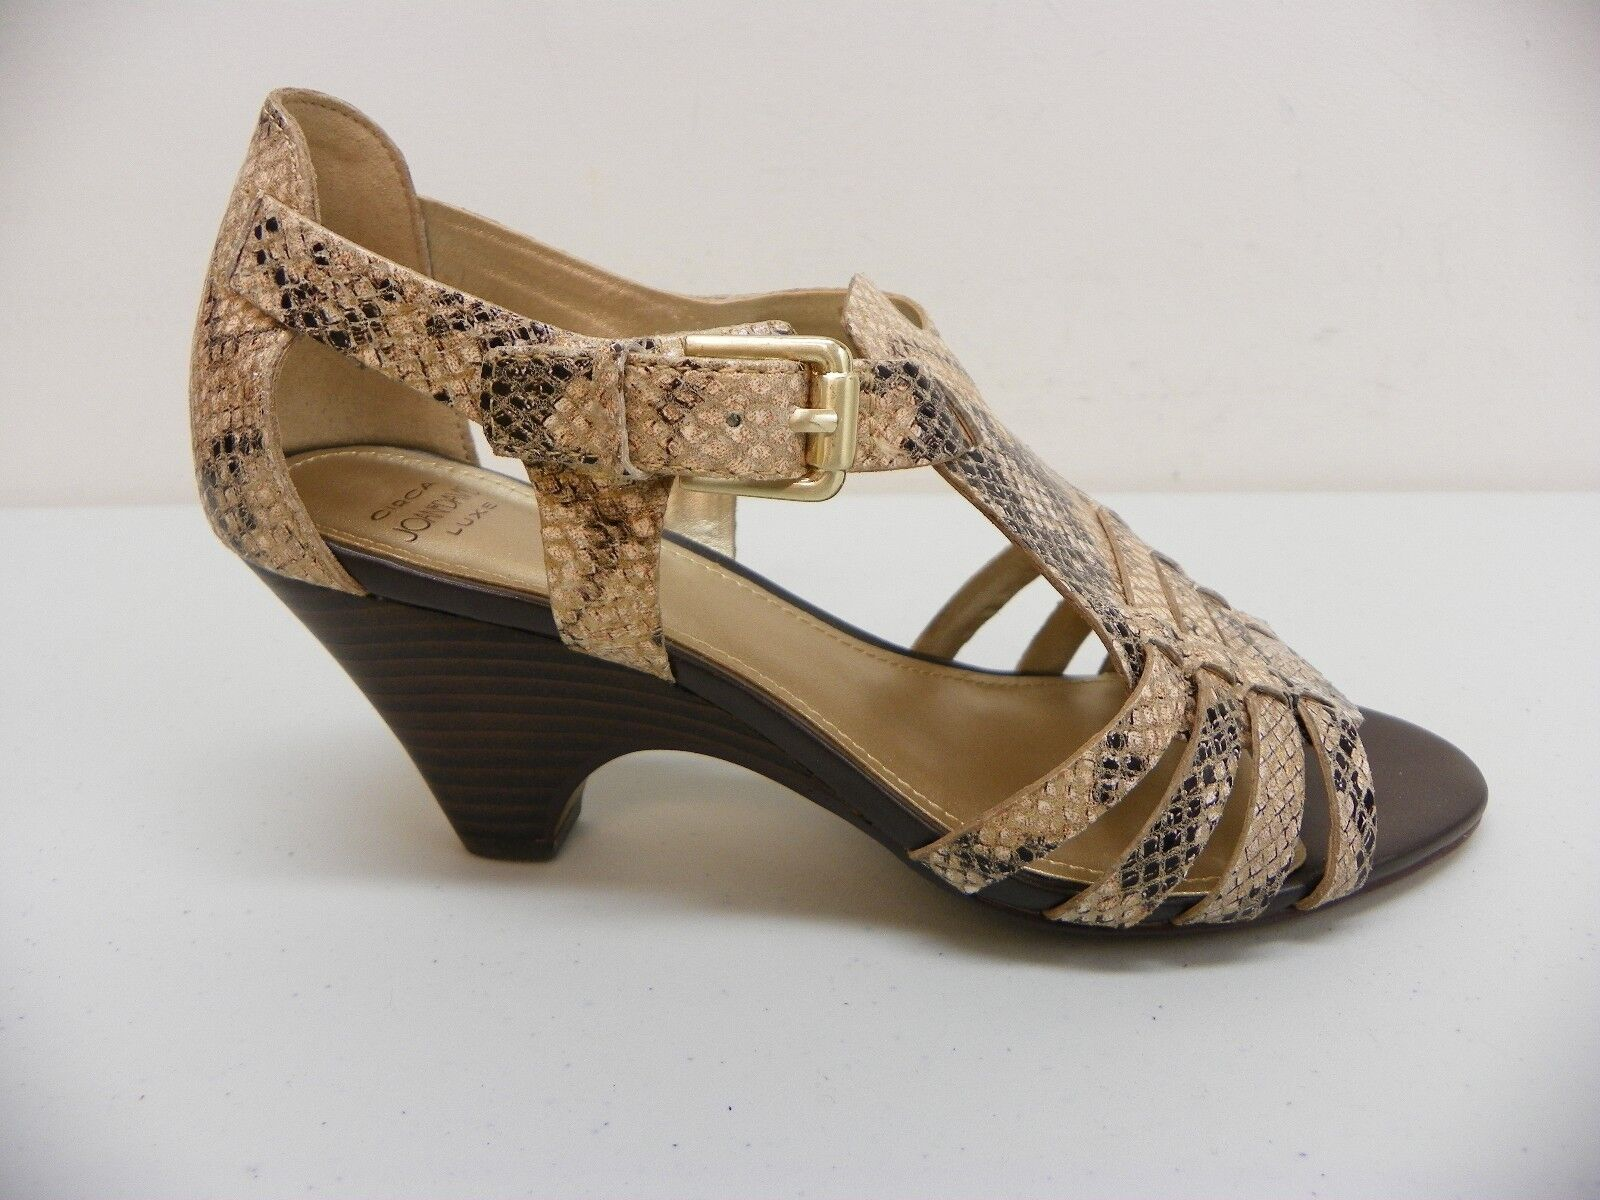 Circa Joan David chaussures Nizzie Open Toe Heel Sandals Snake Print Leather 6.5M  89